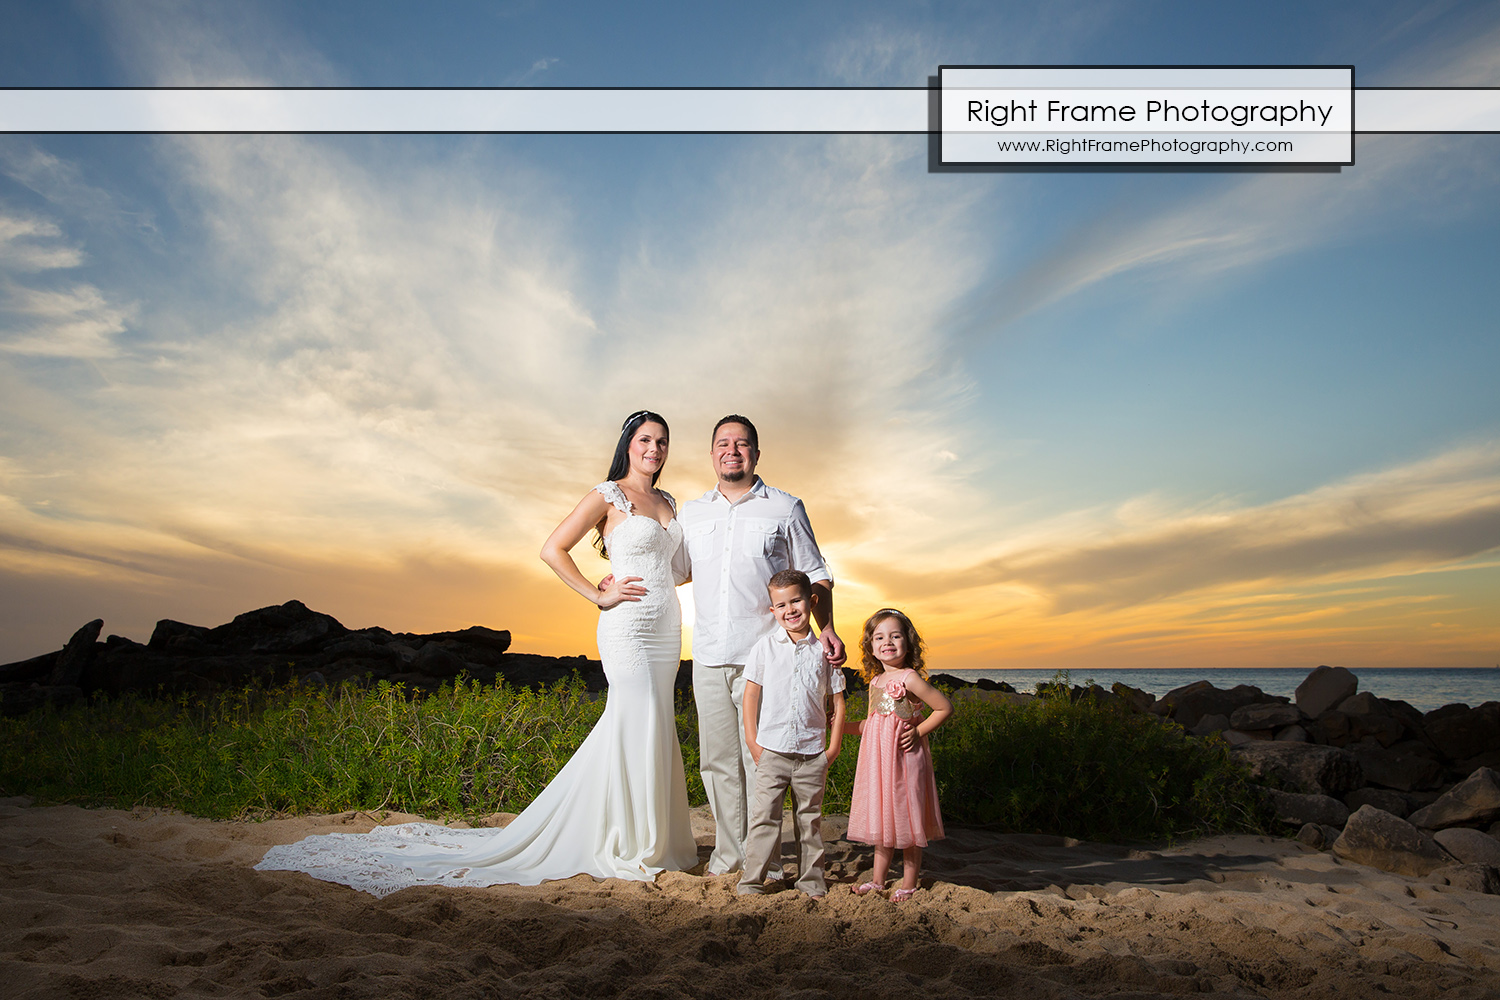 Beach Wedding Ceremony Oahu: FAMILY PHOTOGRAPHER Four Seasons Resort Oahu By RIGHT